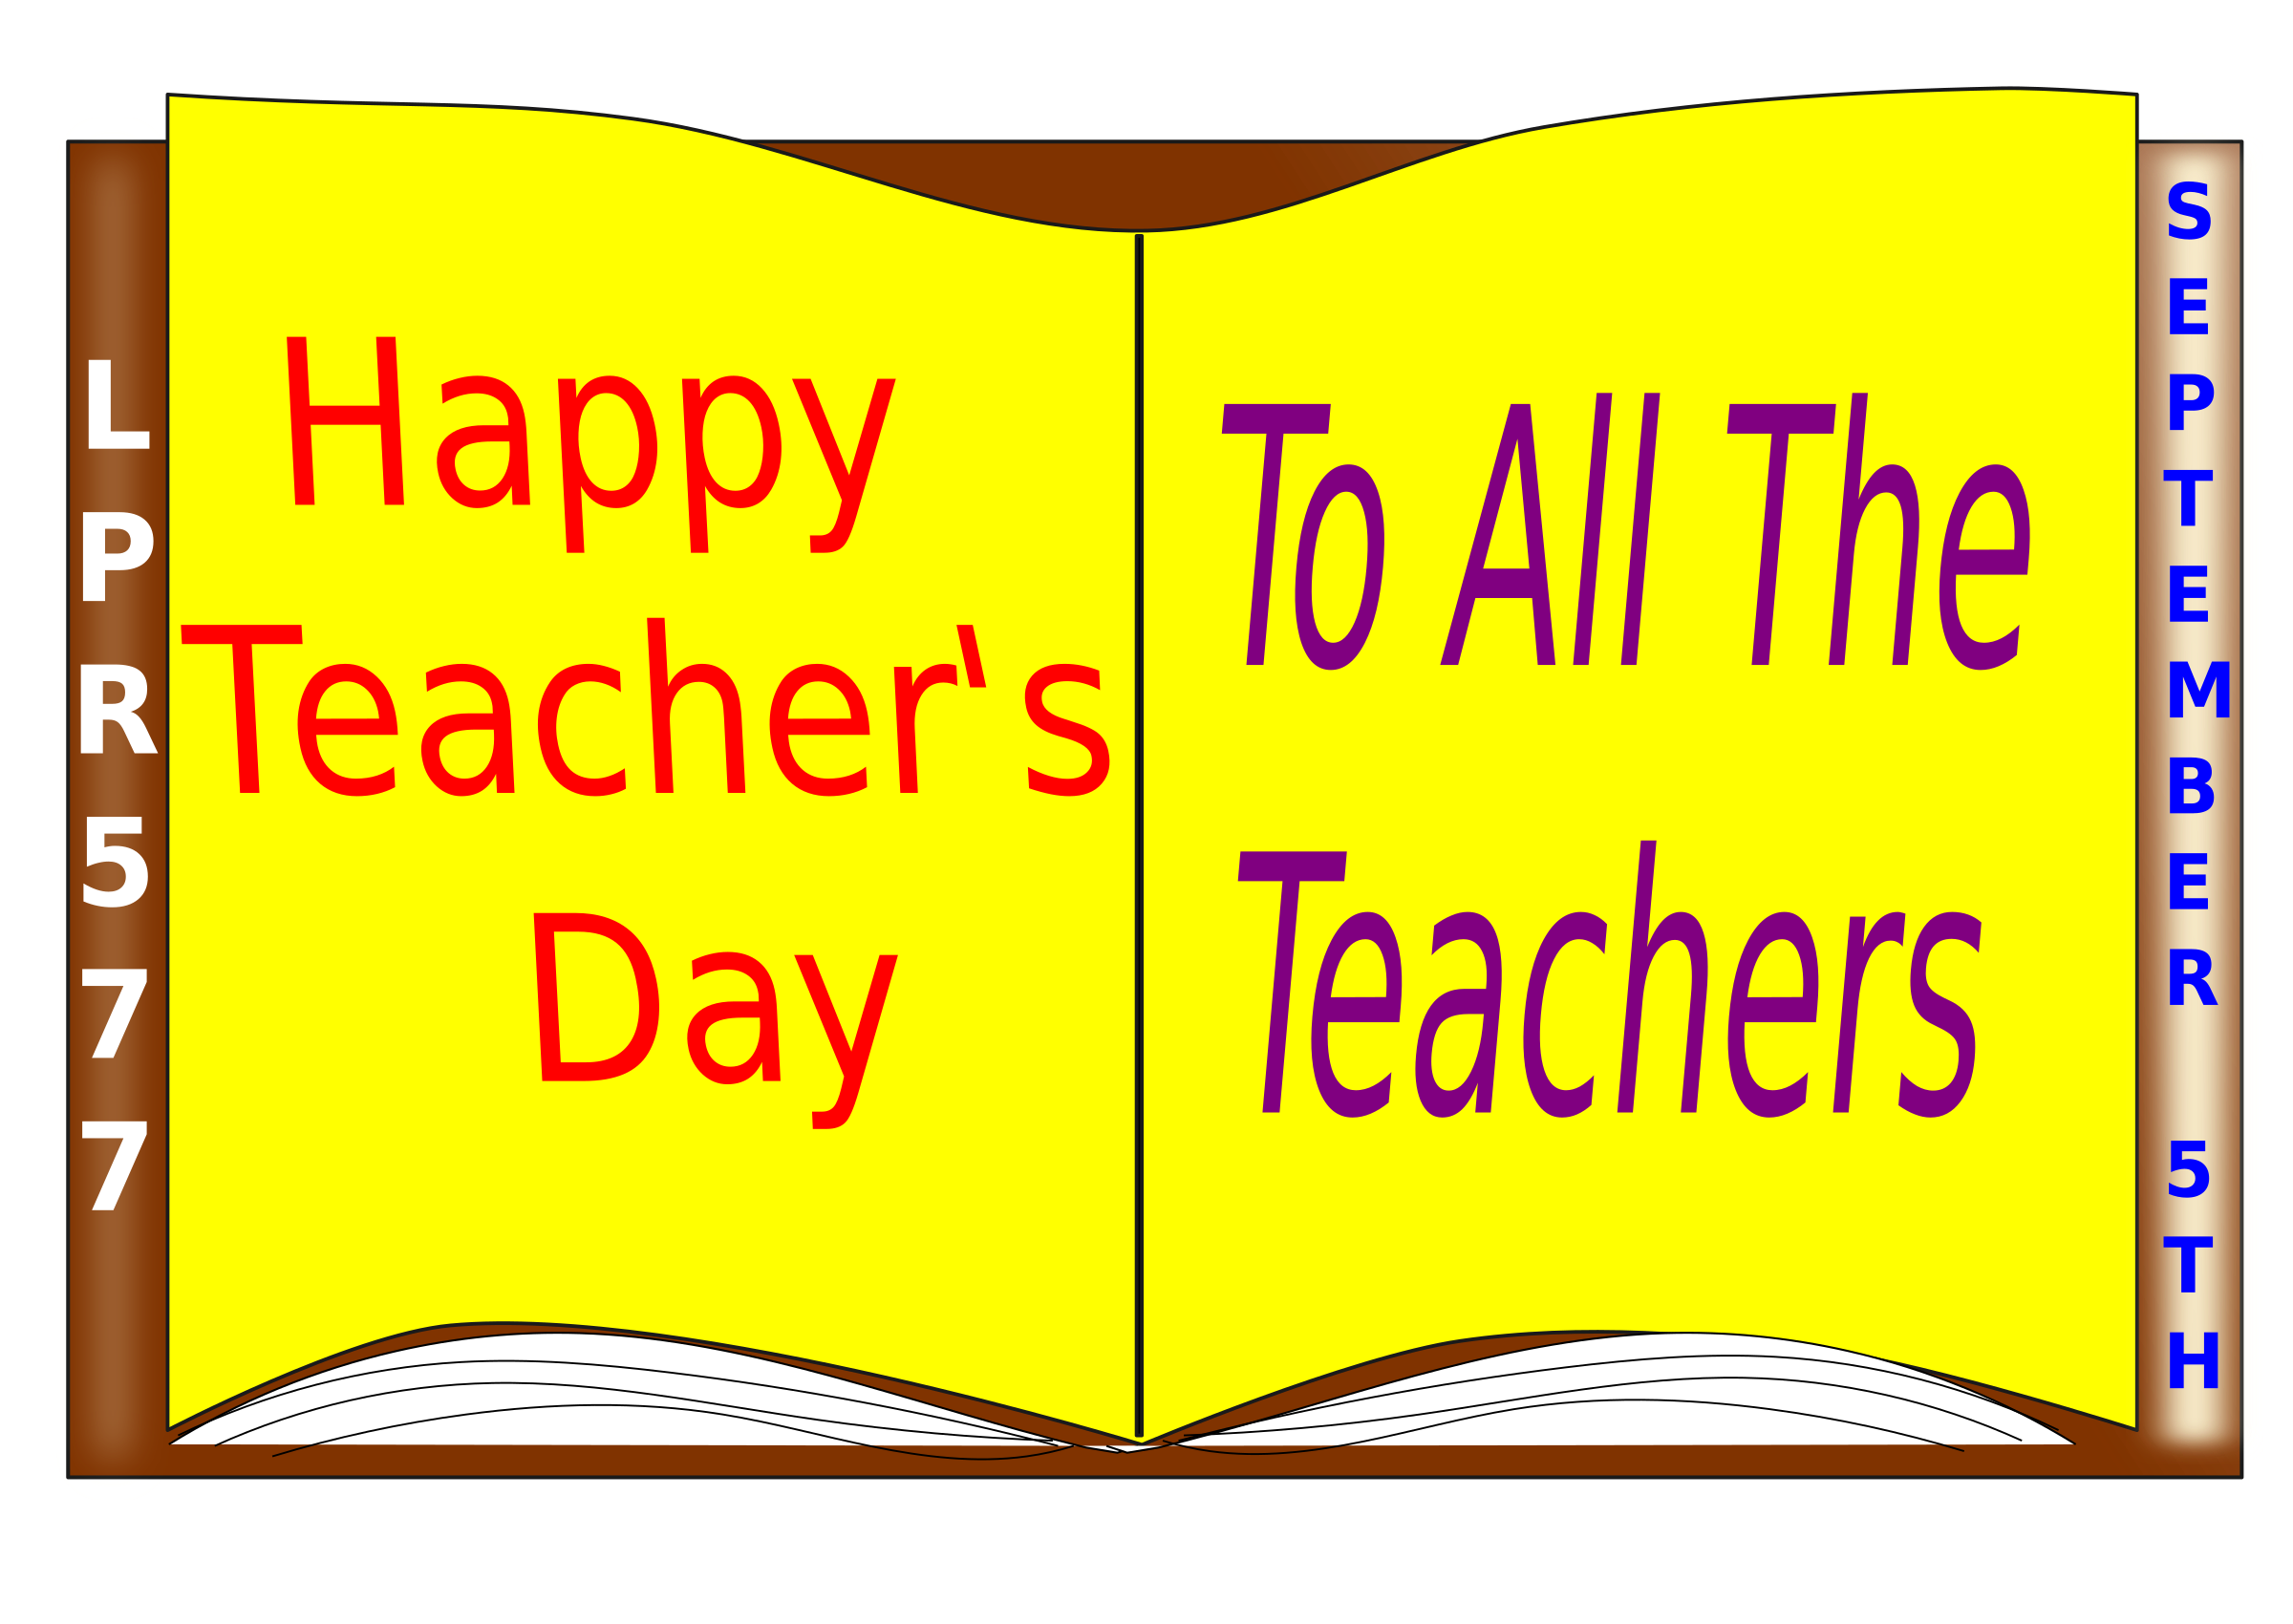 Teacher's day wishes by lpr577